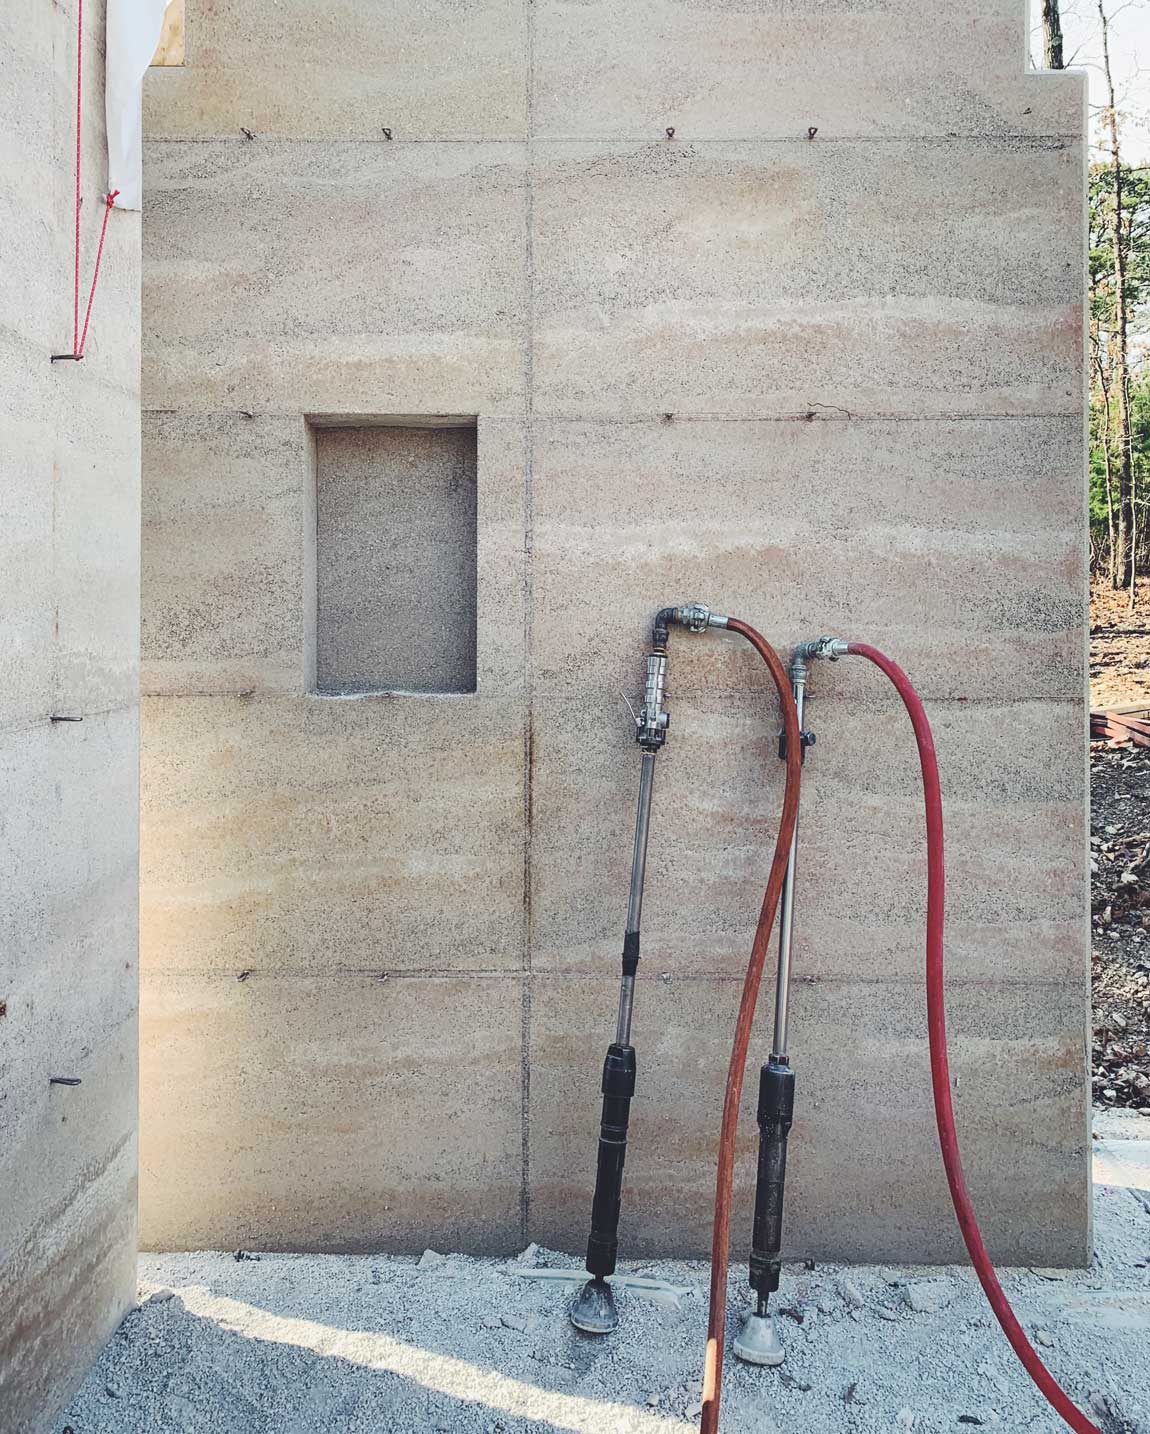 2 rammers against a rammed earth wall - the quality of light and texture is amazing